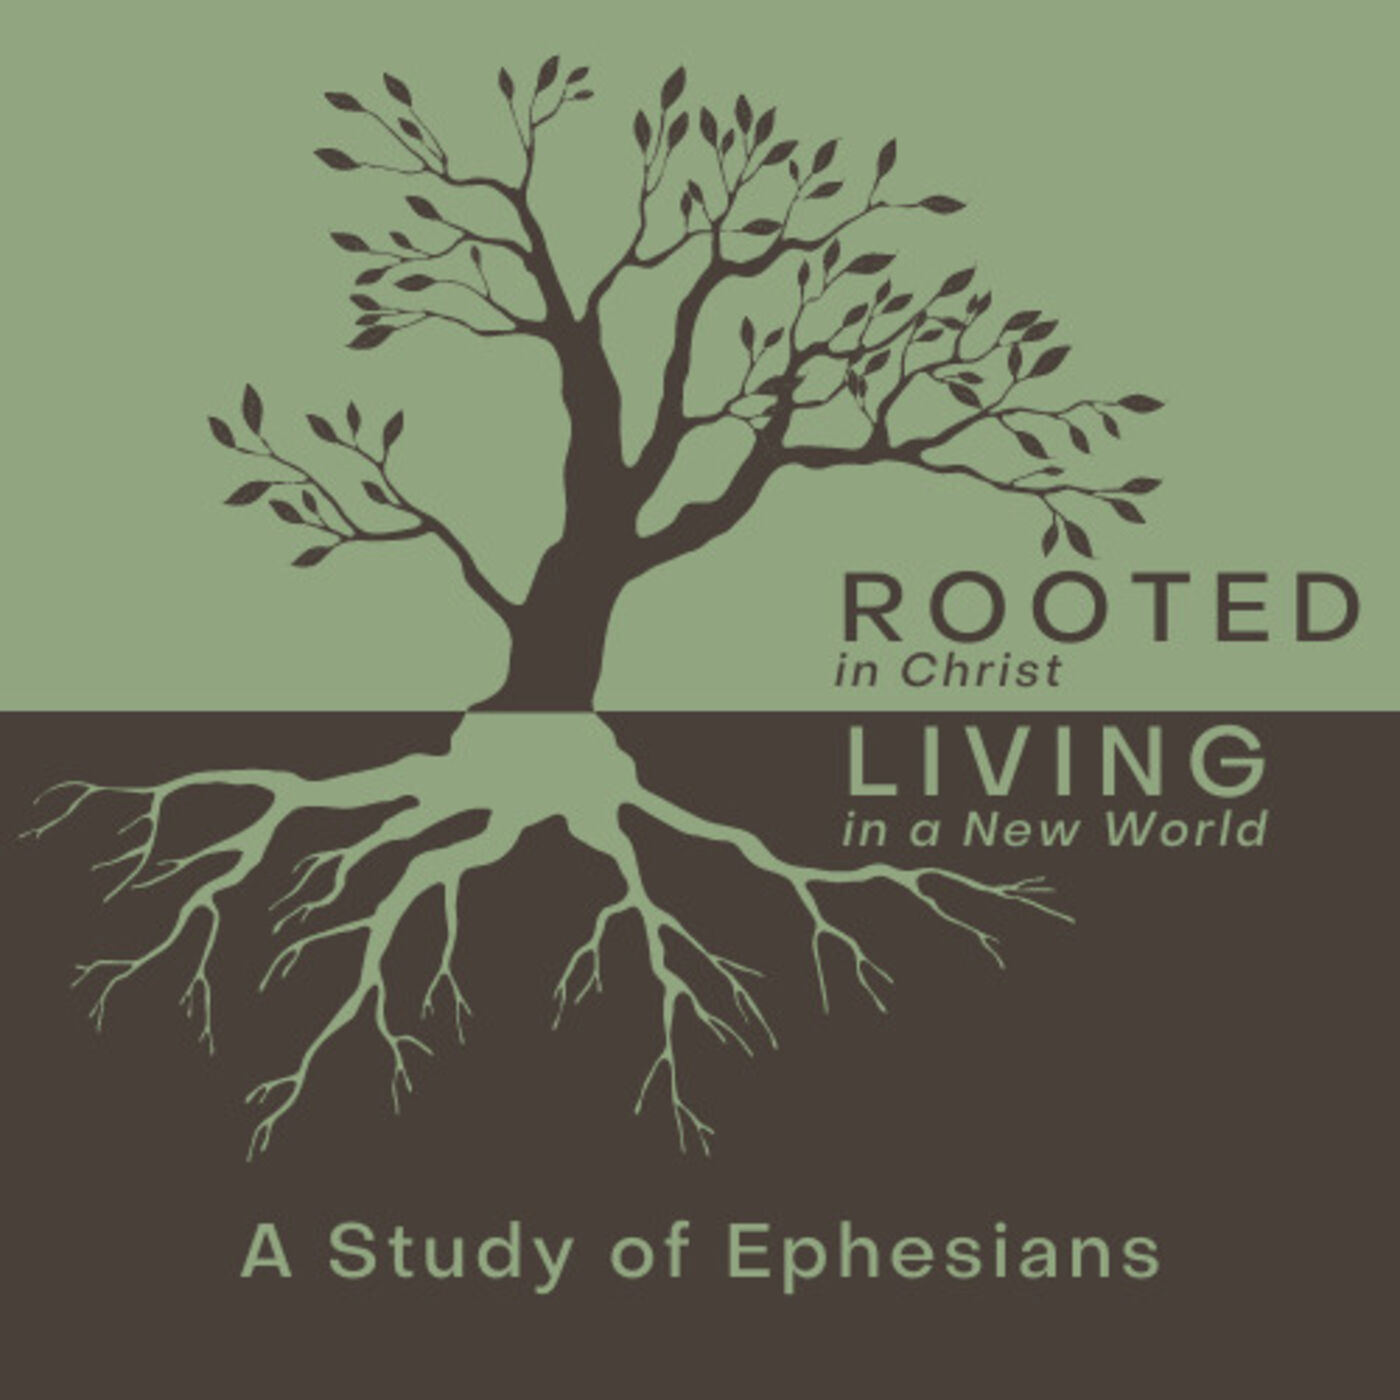 Rooted in Christ, Living in a New World - Adopted From Among the Sons of Adam